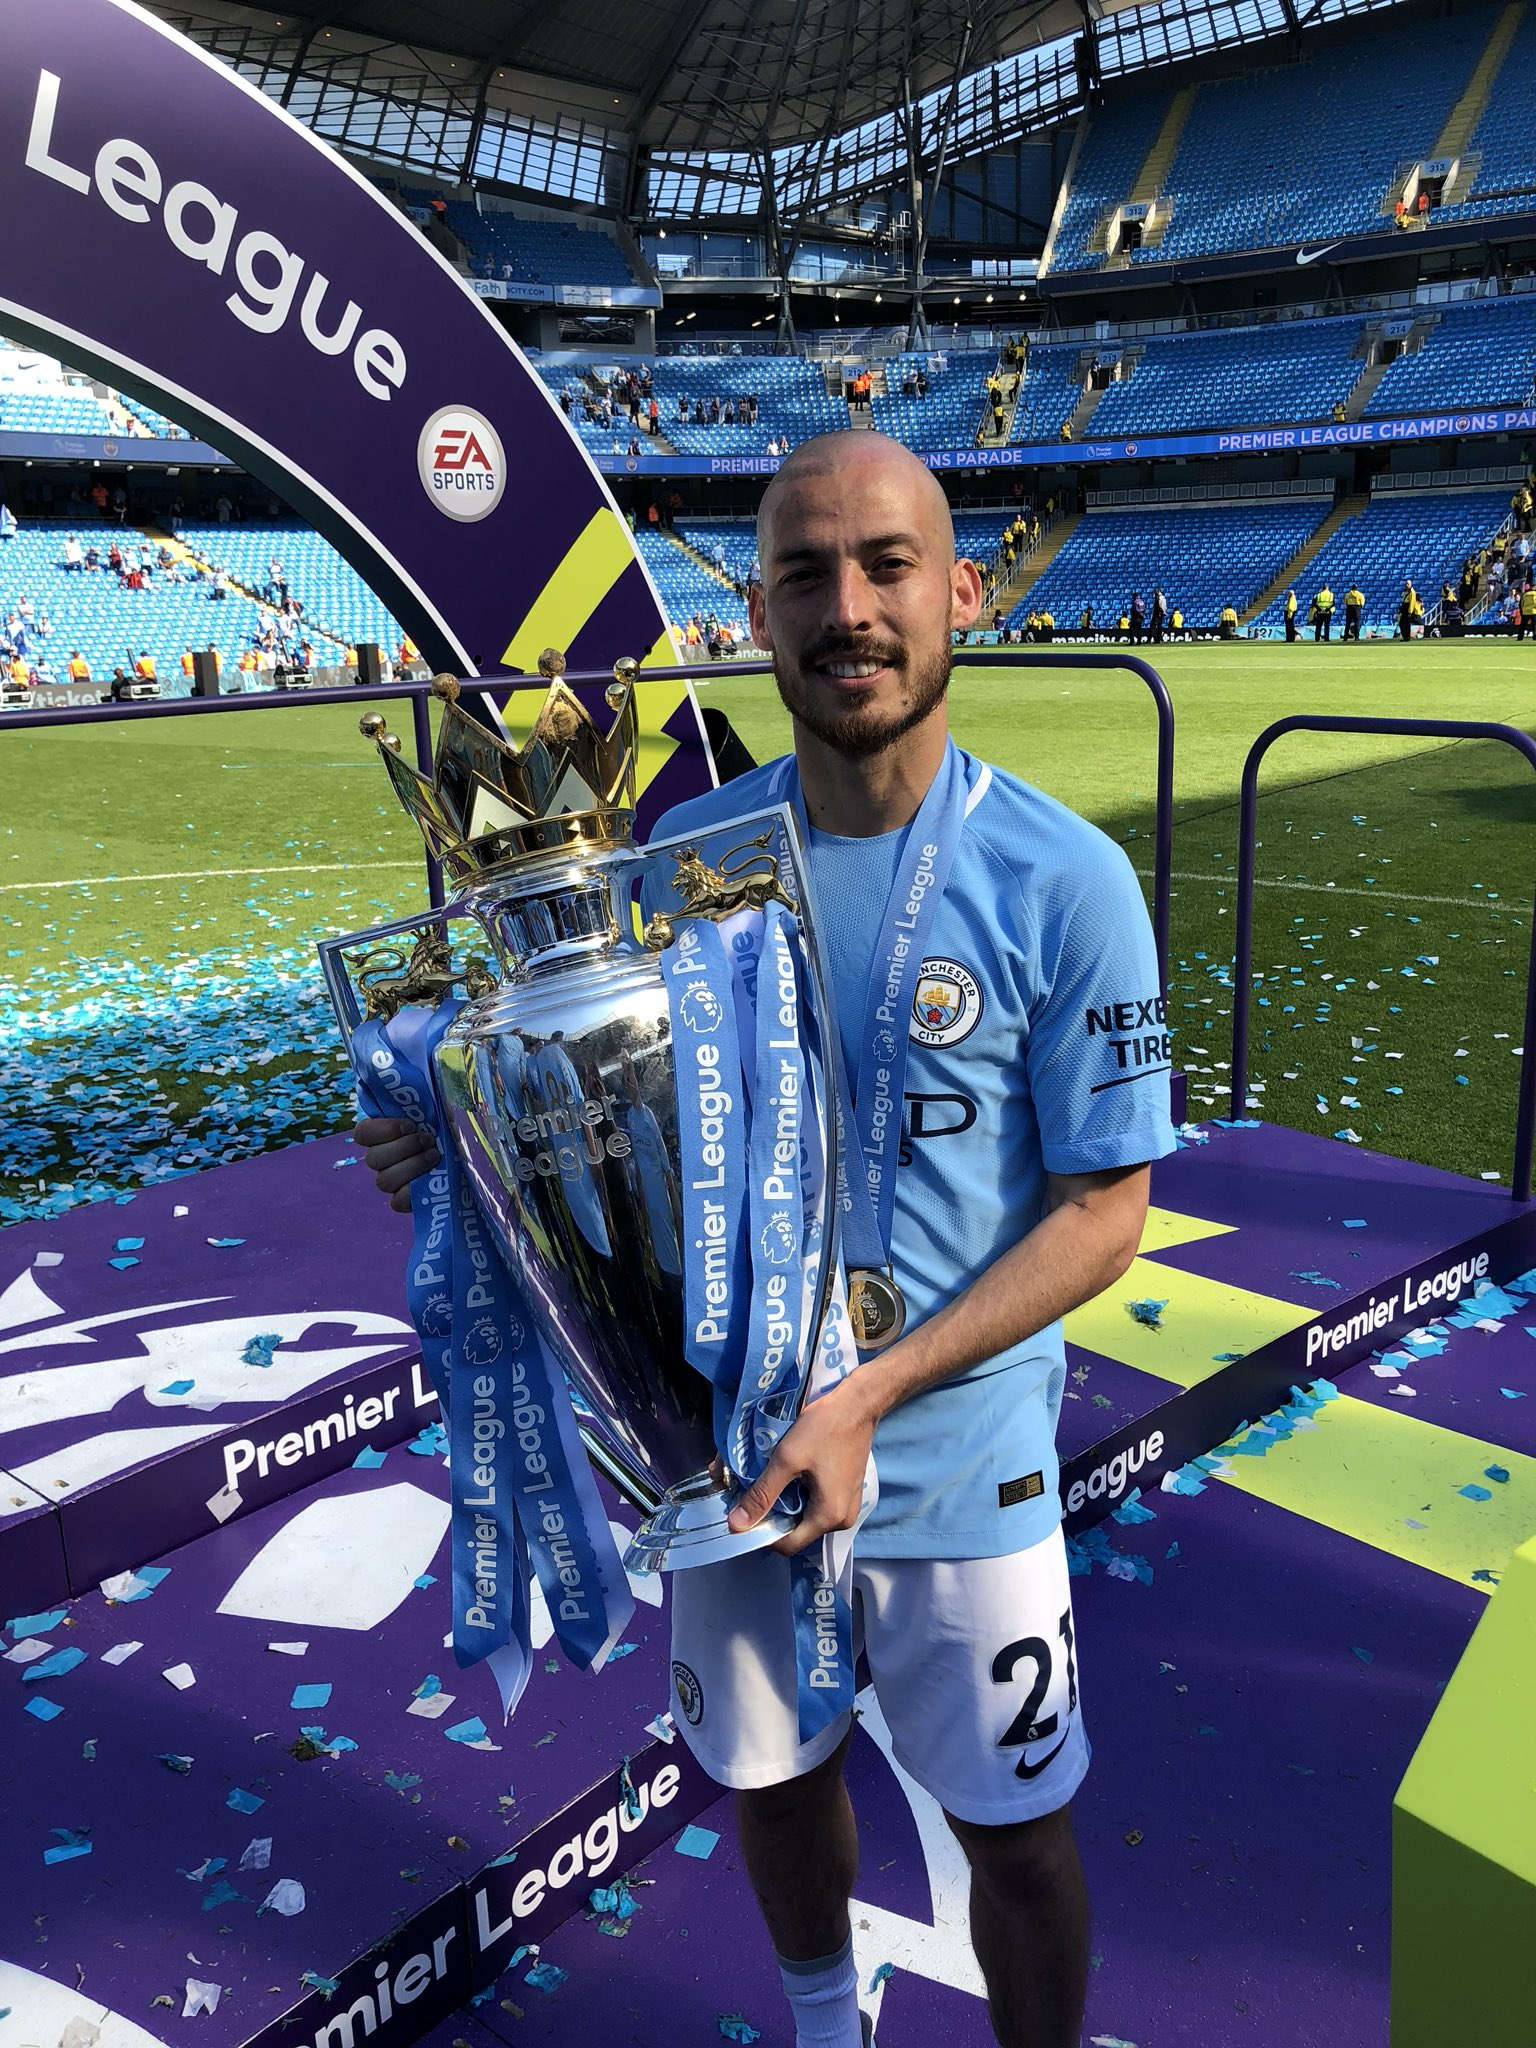 Thank you for all the support throughout the season. Time to enjoy the night, #CHAMPIONS18 ������ https://t.co/WzXEr61kEQ